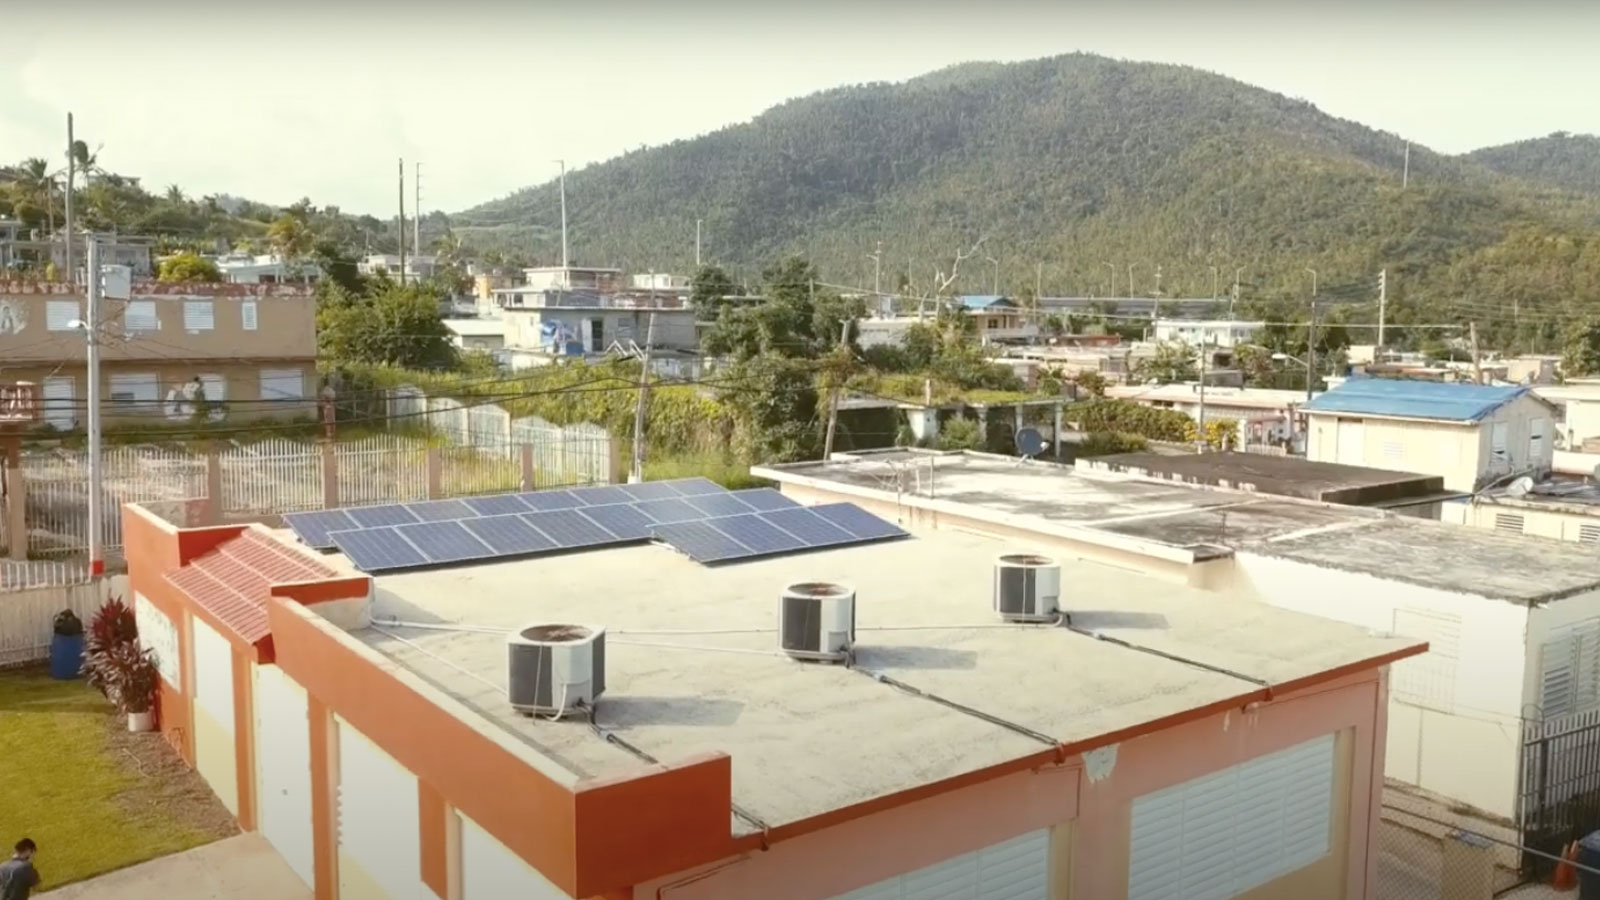 Resilient Power solar in Puerto Rico